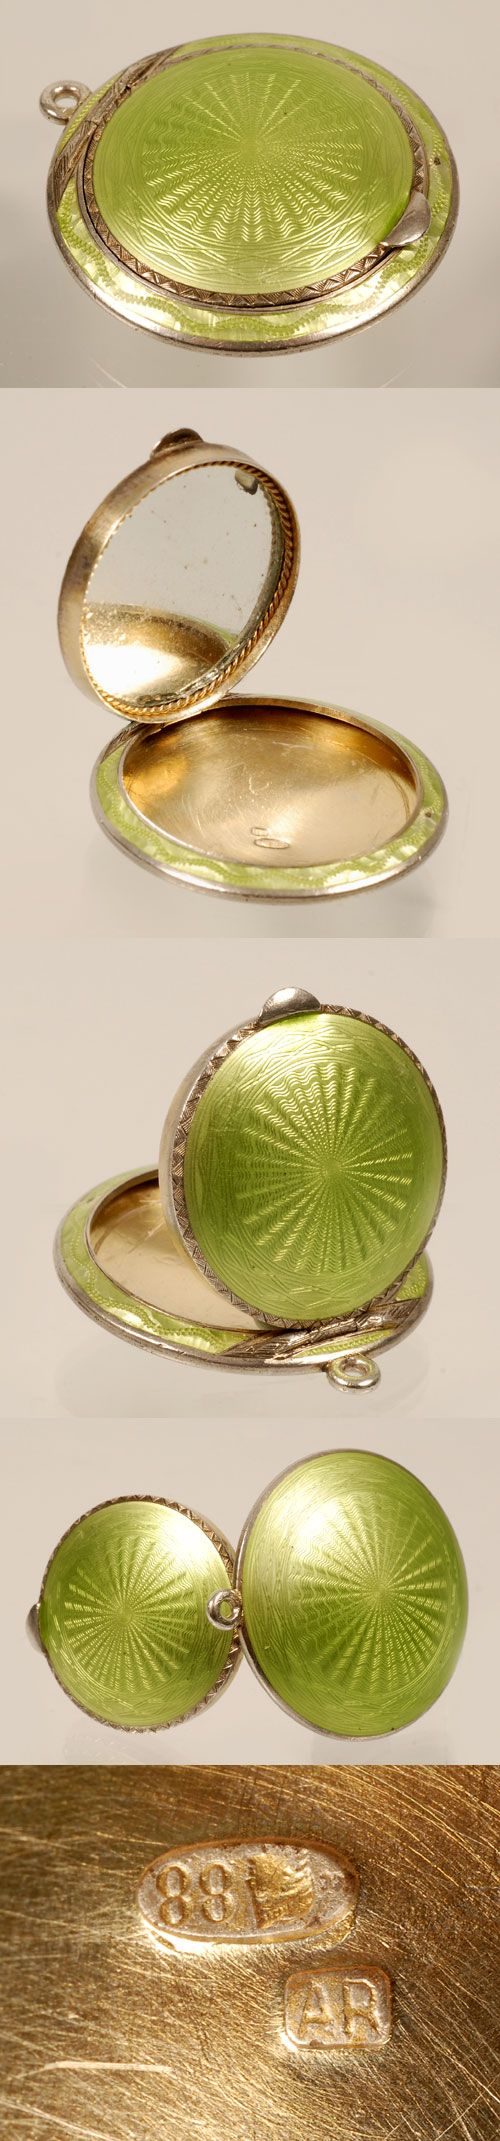 A Faberge silver gilt and guilloche enamel compact, Anna Ringe, St. Petersburg, 1908-1917. The low profile circular case enameled in an apple green ober radiating engine-turned ground, the circular hinged lid fitted with mirror